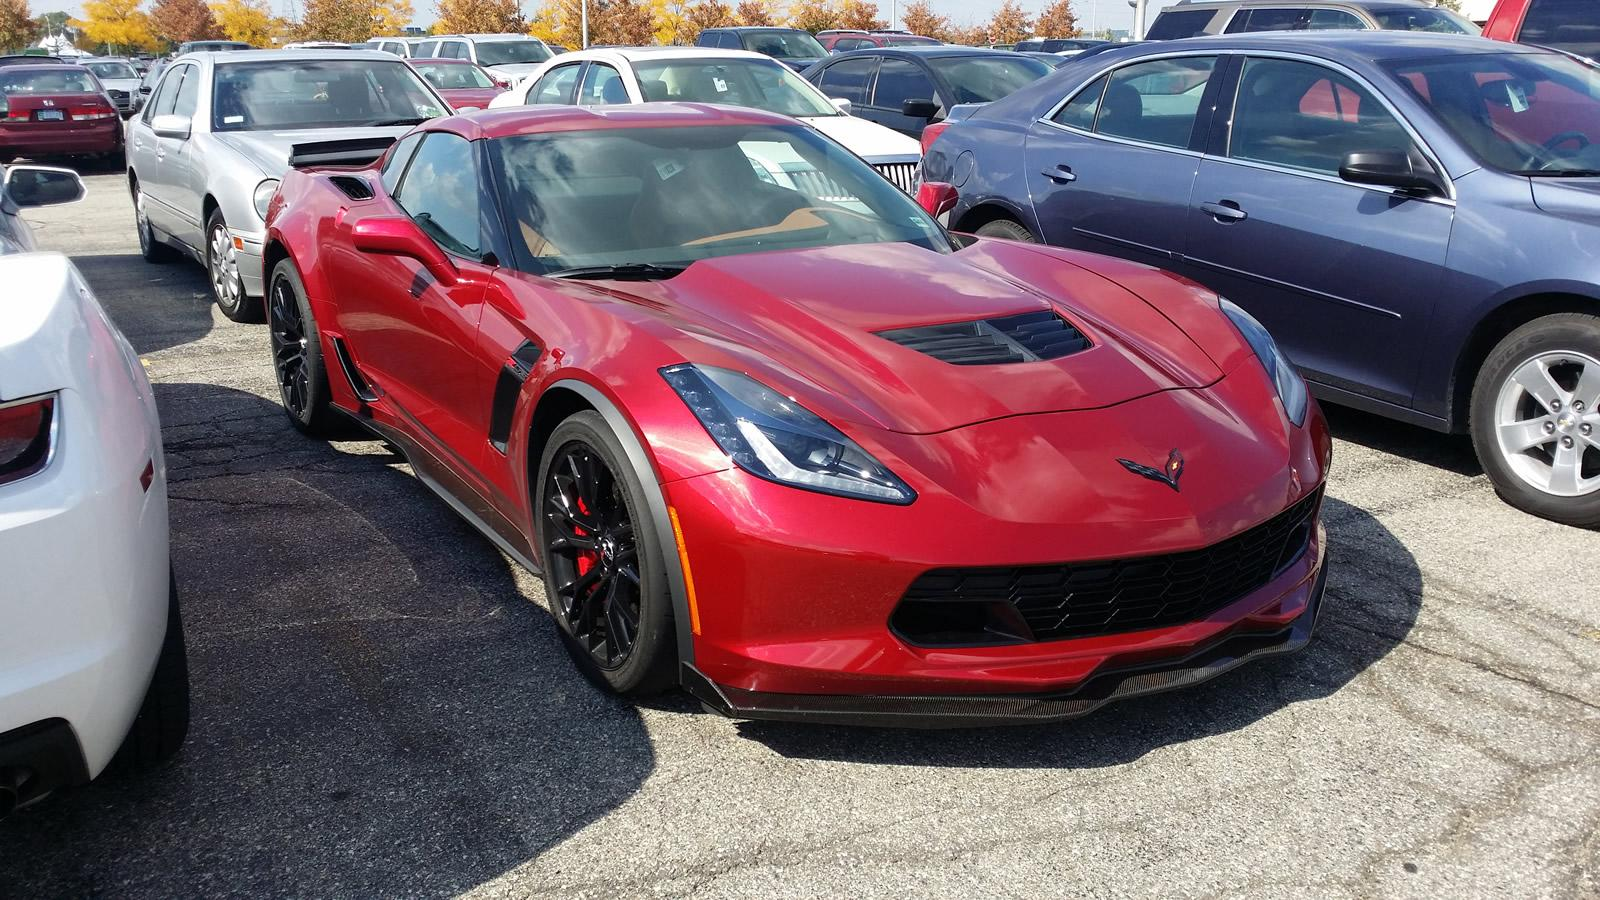 Delicieux Prior To The Brand New 2015 Chevrolet Corvette ...